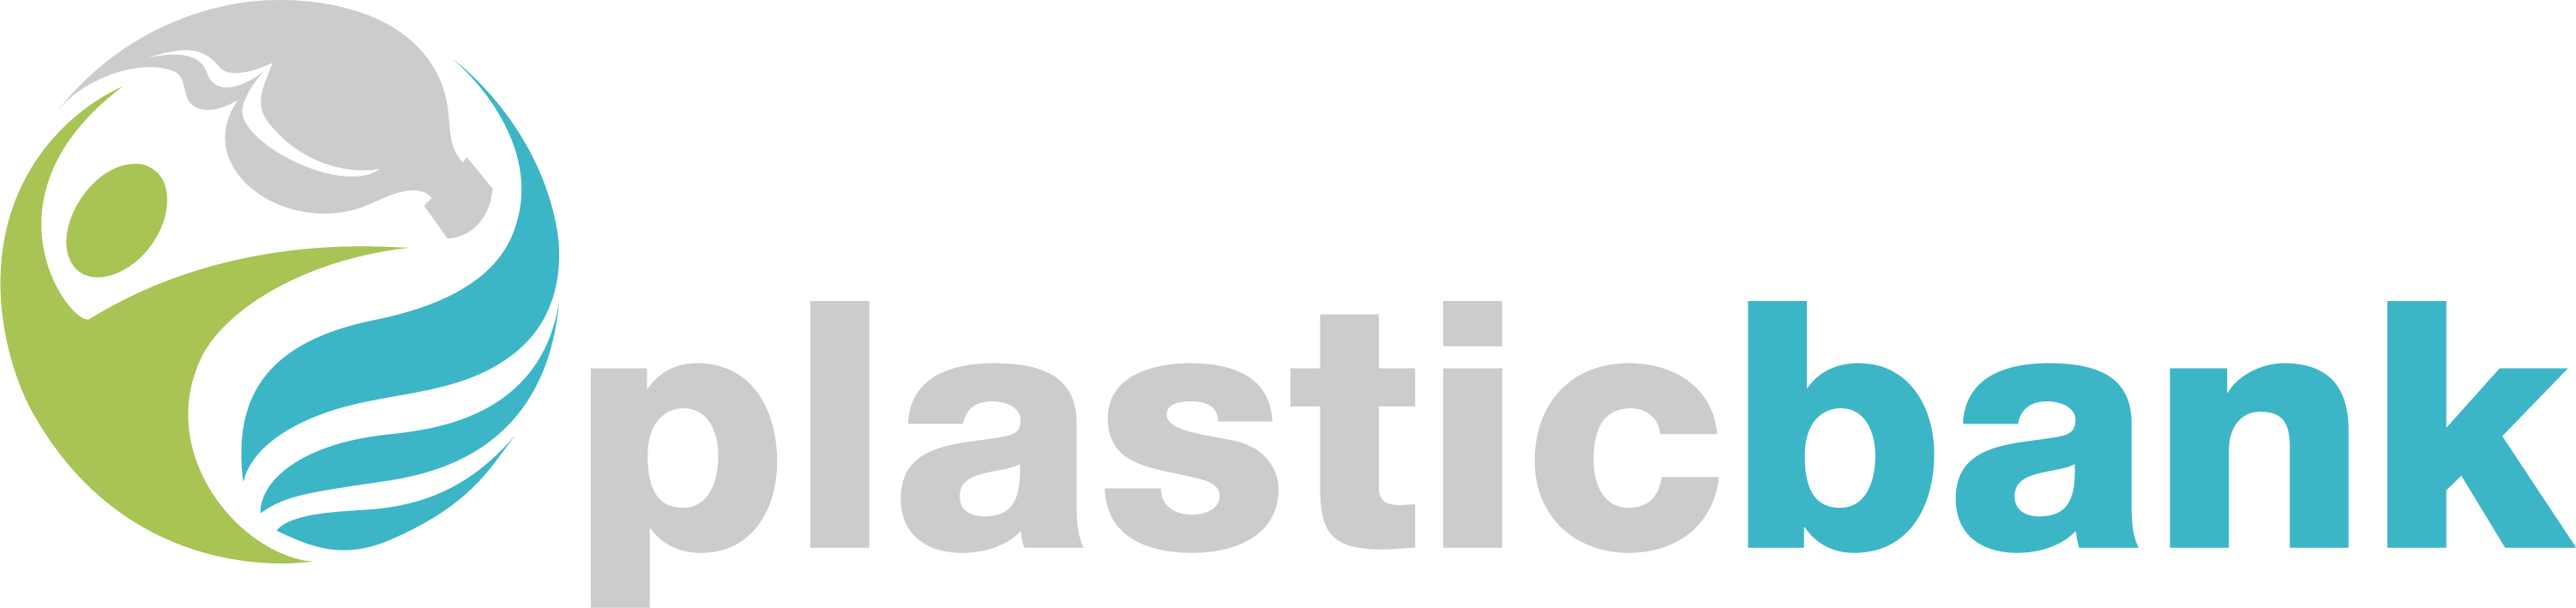 Plastic Bank logo